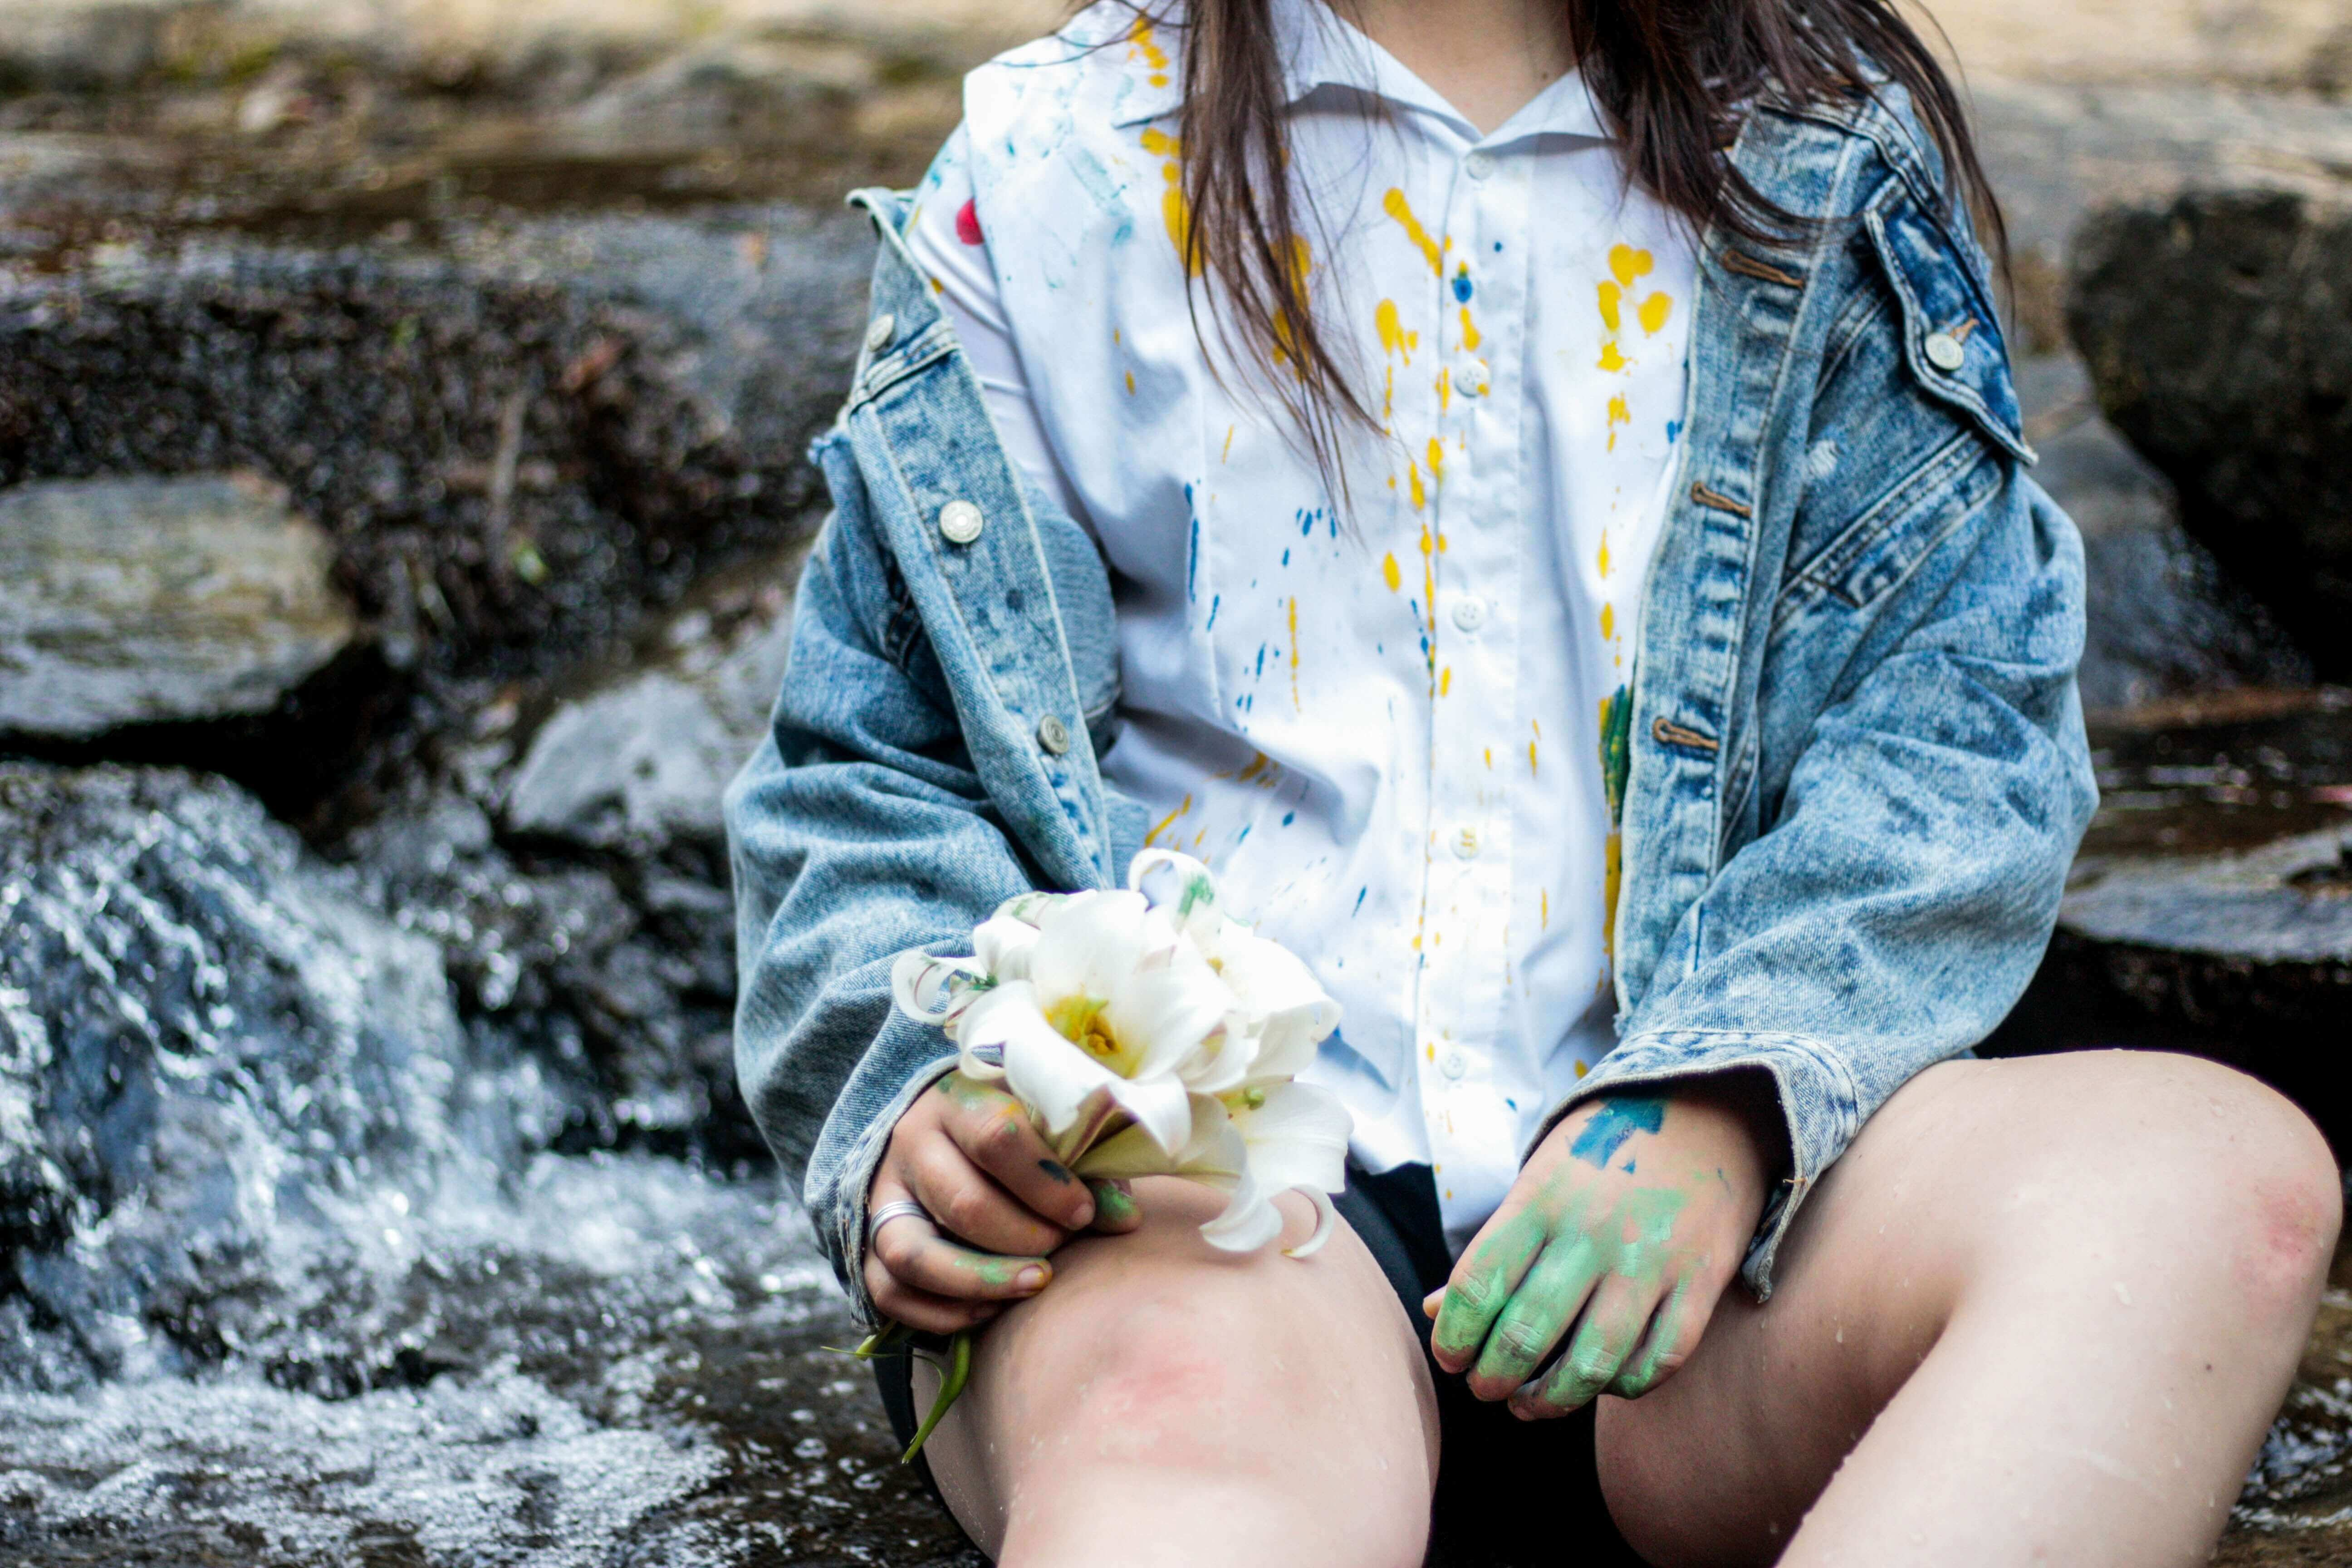 girl with messy clothes holding a flower